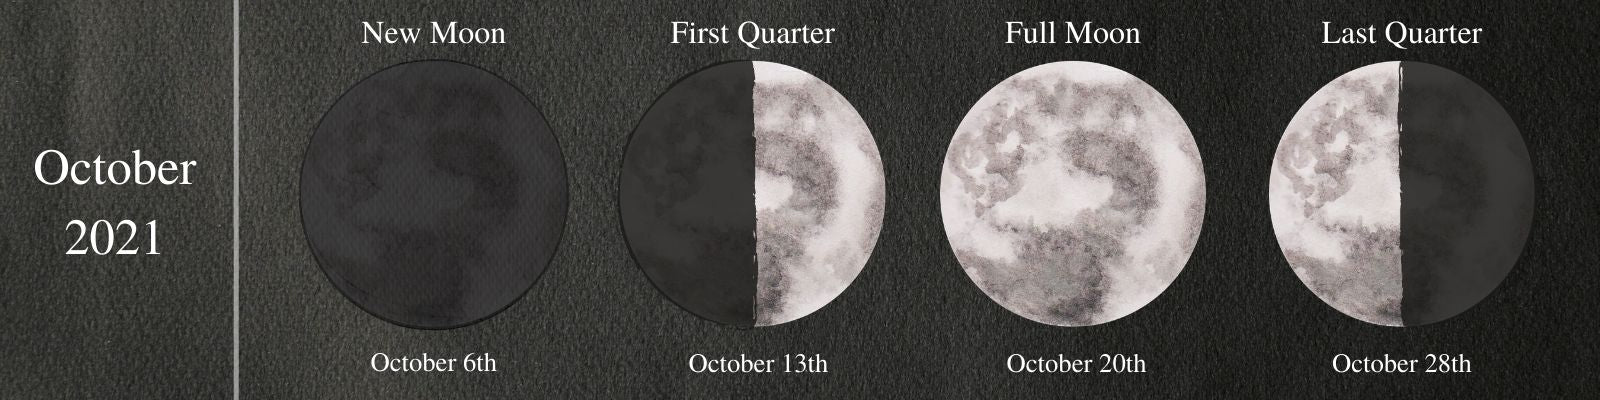 Moon Phases October 2021